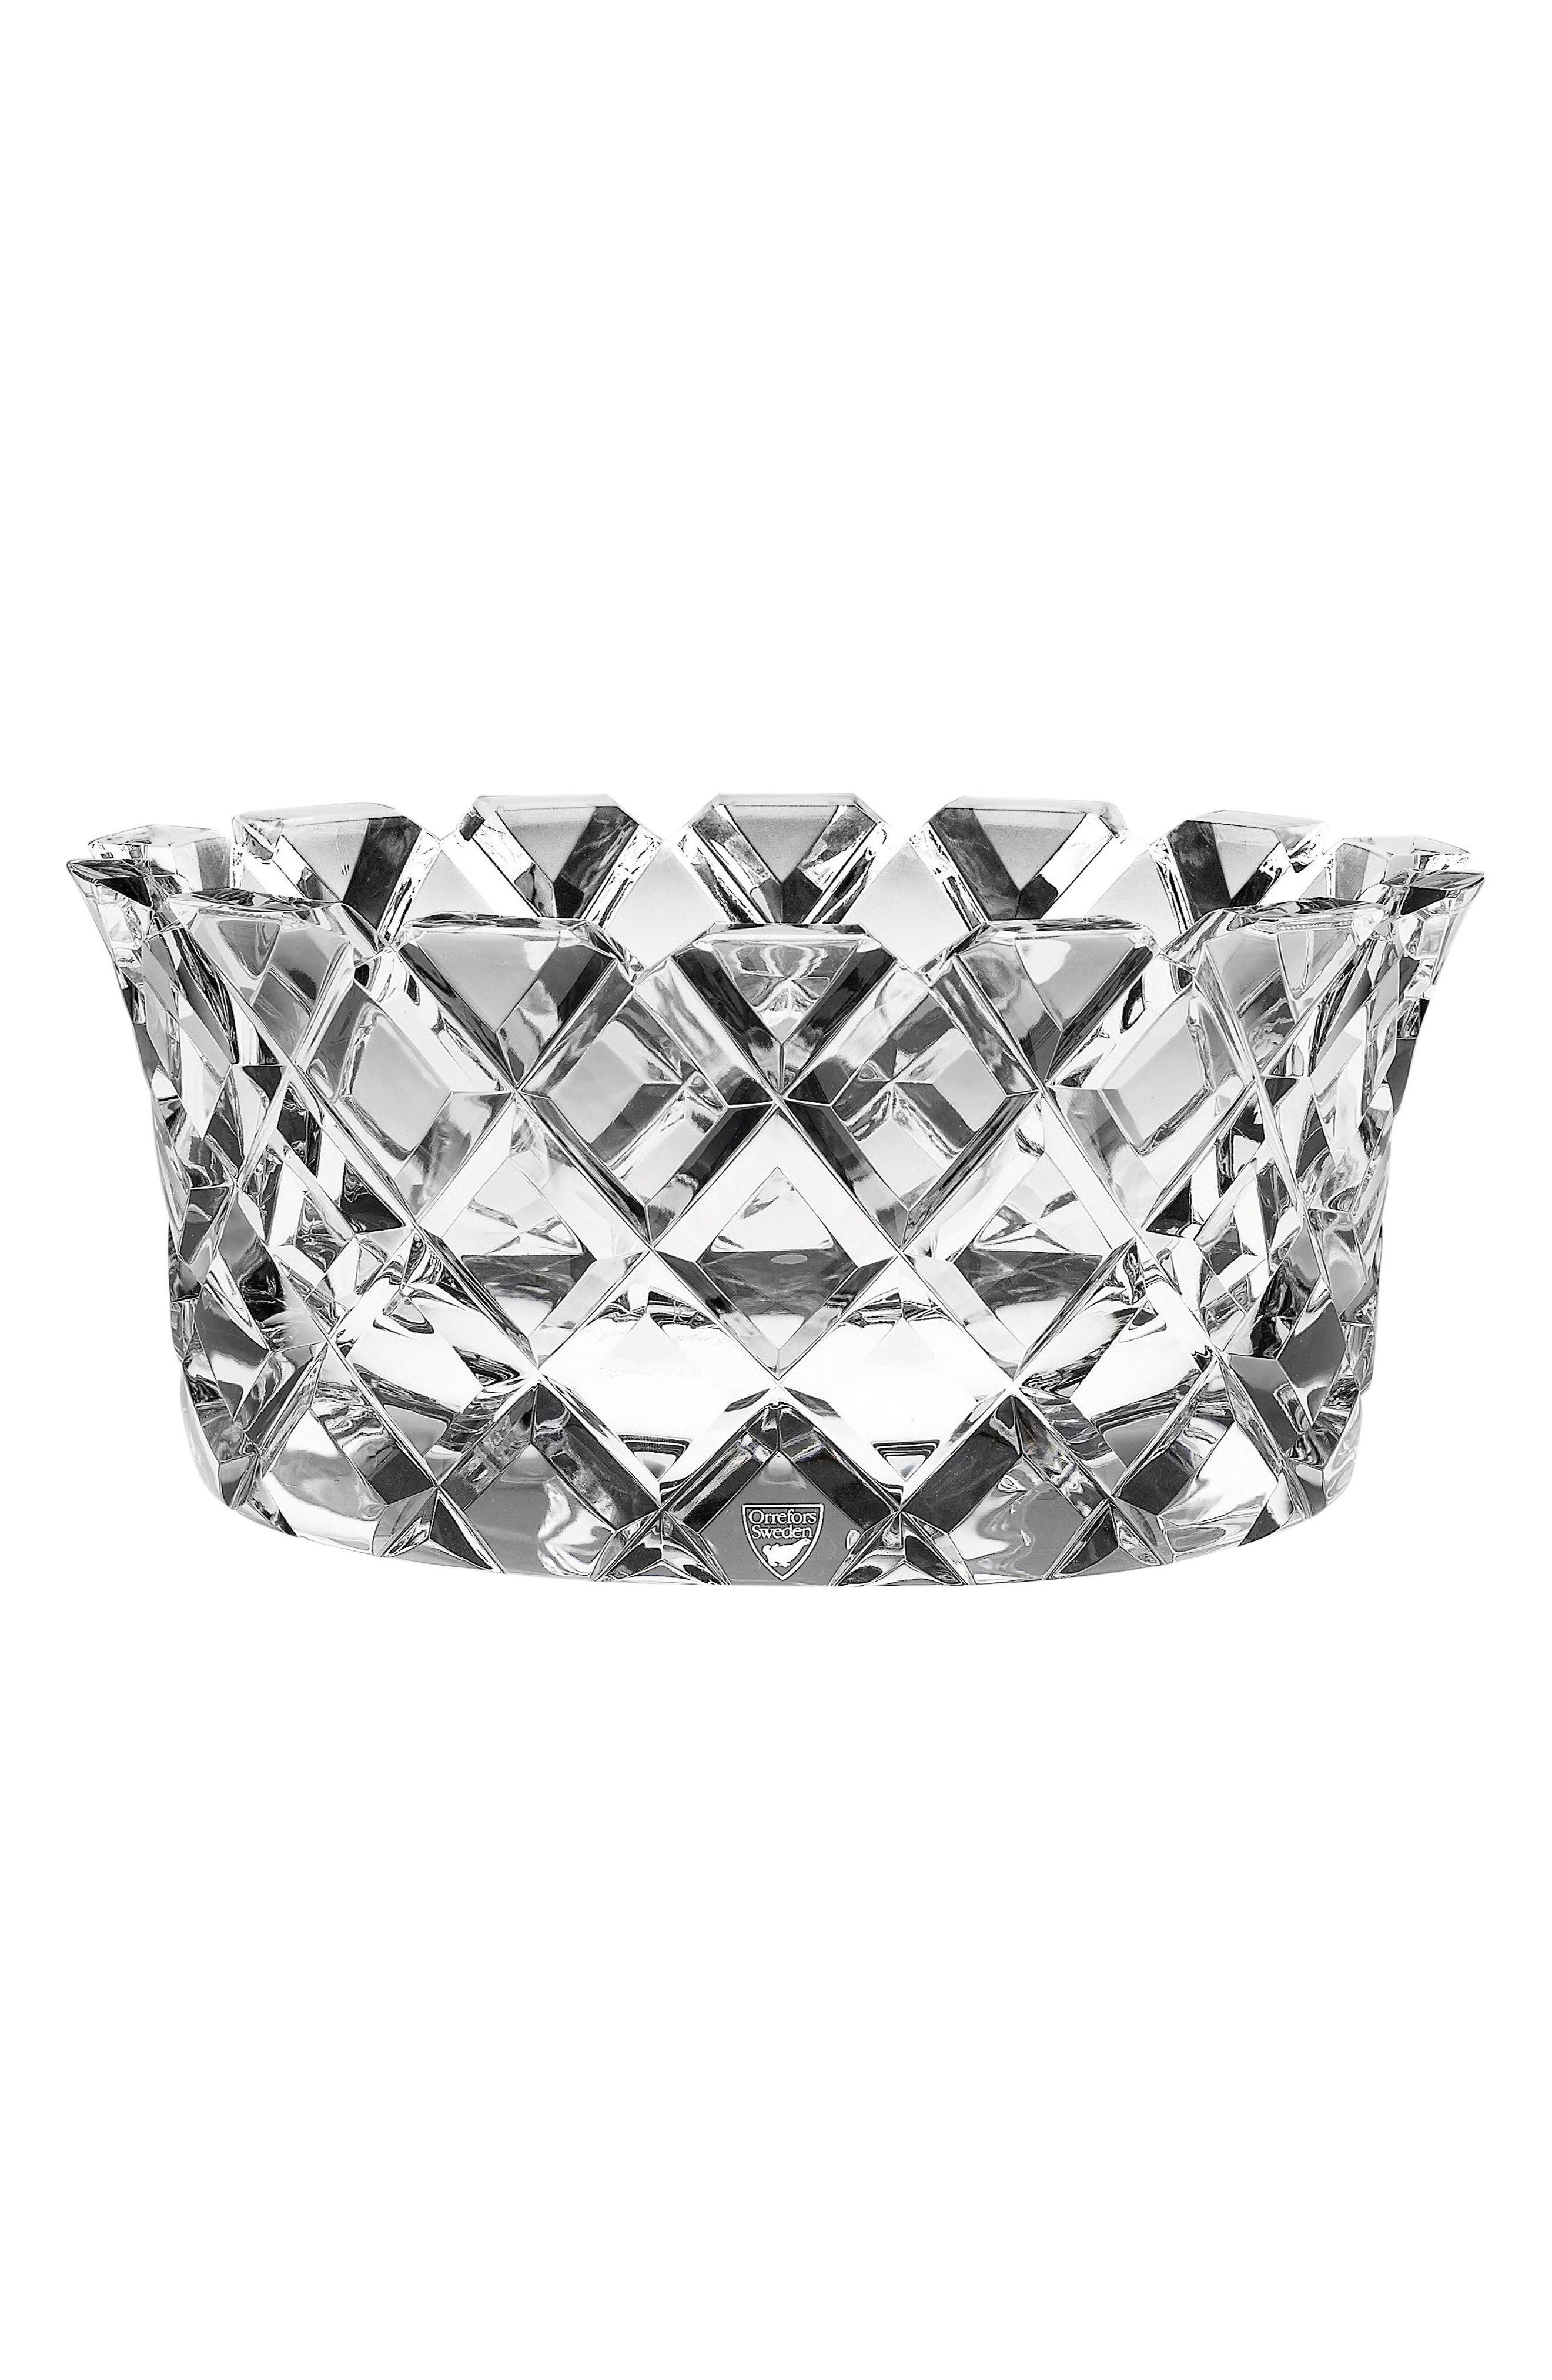 Sofiero Low Crystal Bowl,                         Main,                         color, 100